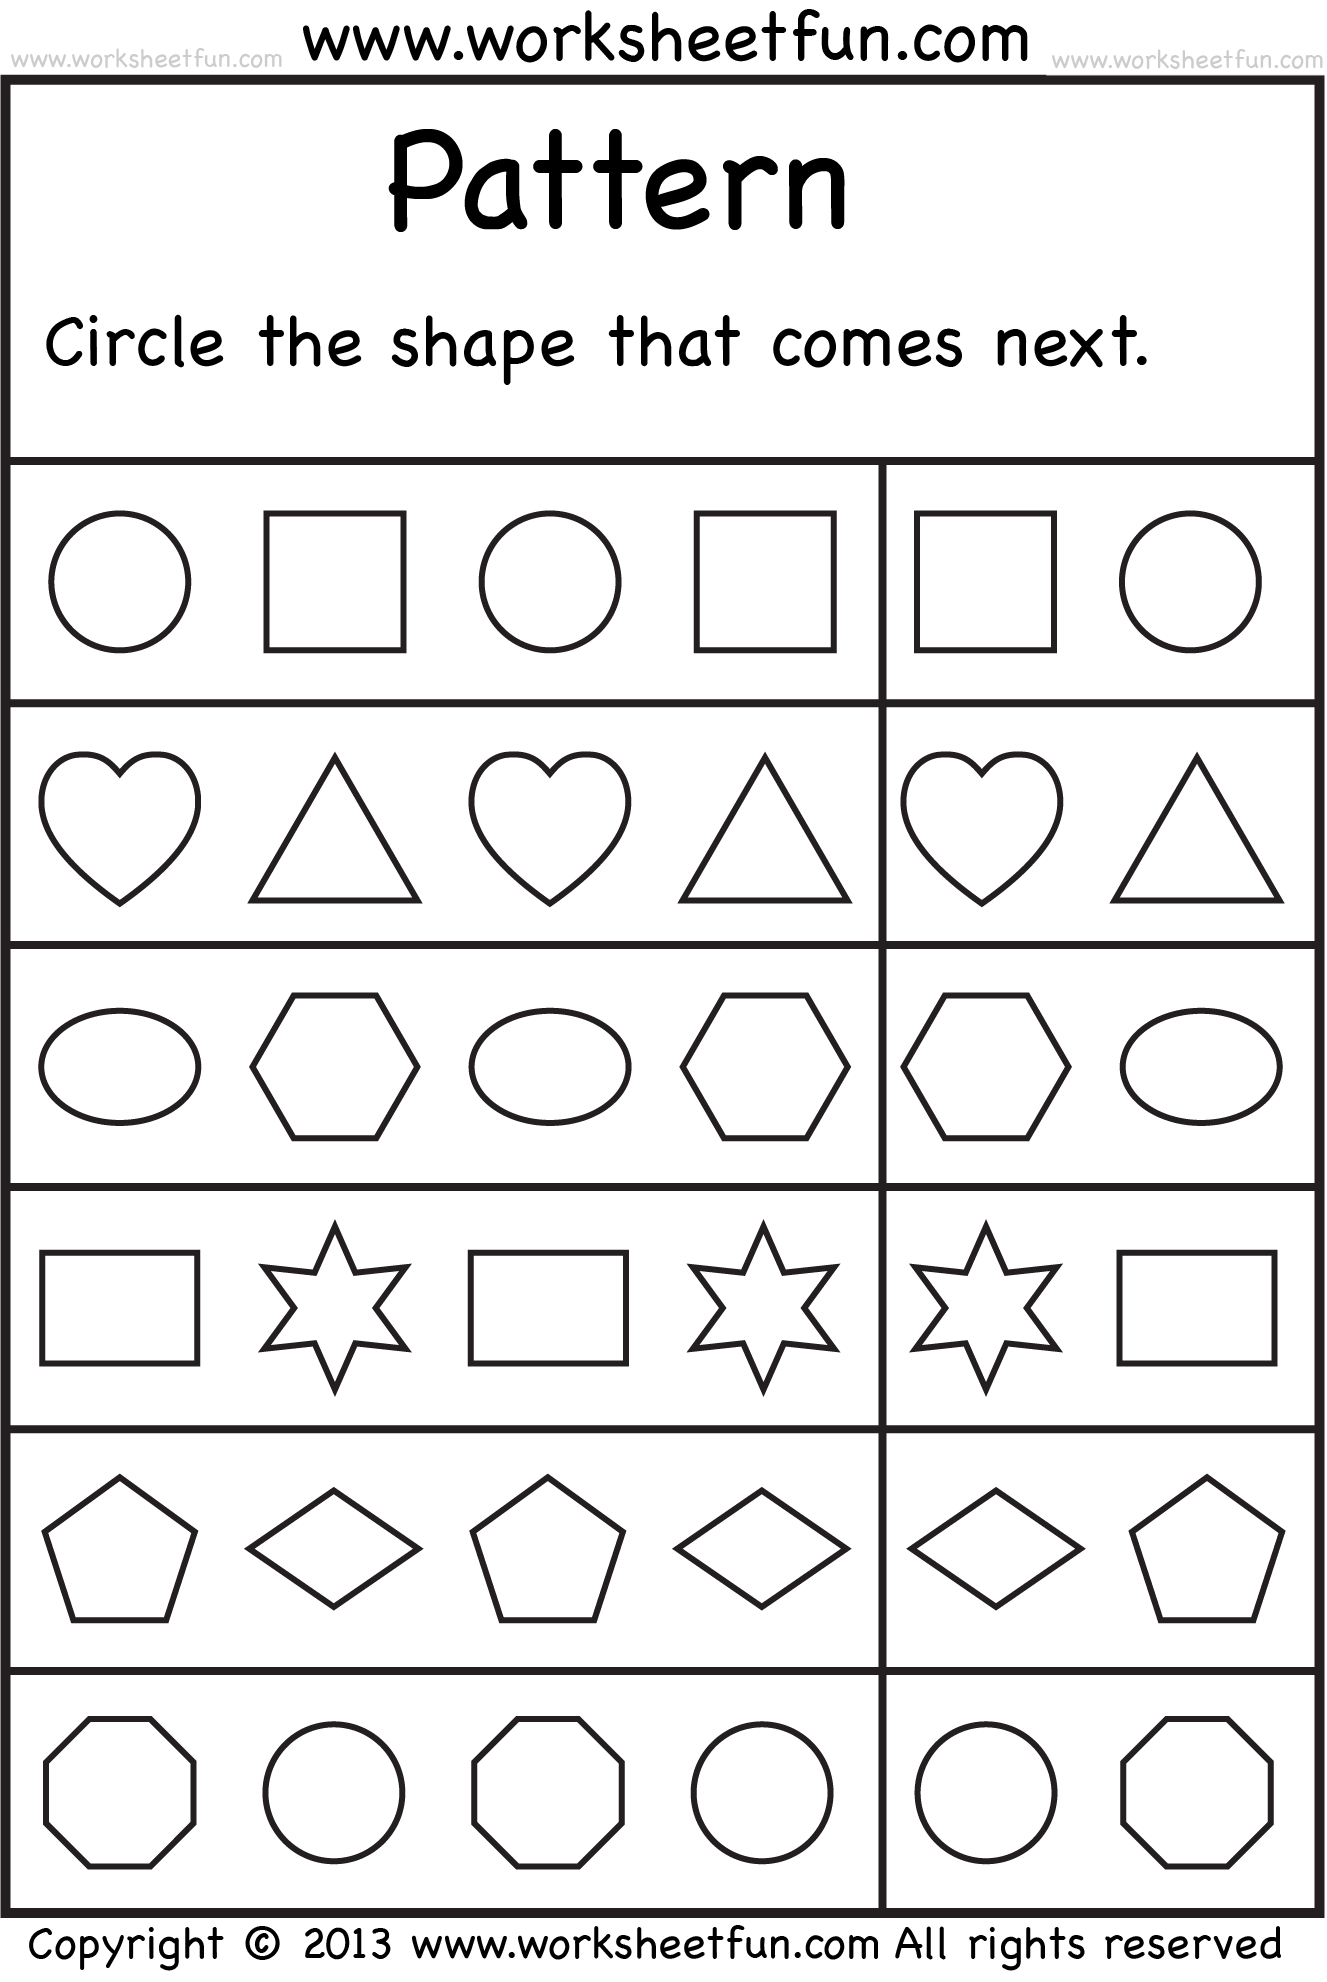 Proatmealus  Gorgeous  Images About School Worksheets On Pinterest  Number Words  With Hot  Images About School Worksheets On Pinterest  Number Words Alphabet Worksheets And Free Printable Kindergarten Worksheets With Alluring Five Senses Worksheet For Kindergarten Also Polygons Worksheet Th Grade In Addition Super Sentences Worksheets And Conjunctions Worksheet Th Grade As Well As Nickel Worksheets For Kindergarten Additionally Preschool Opposite Worksheets From Pinterestcom With Proatmealus  Hot  Images About School Worksheets On Pinterest  Number Words  With Alluring  Images About School Worksheets On Pinterest  Number Words Alphabet Worksheets And Free Printable Kindergarten Worksheets And Gorgeous Five Senses Worksheet For Kindergarten Also Polygons Worksheet Th Grade In Addition Super Sentences Worksheets From Pinterestcom